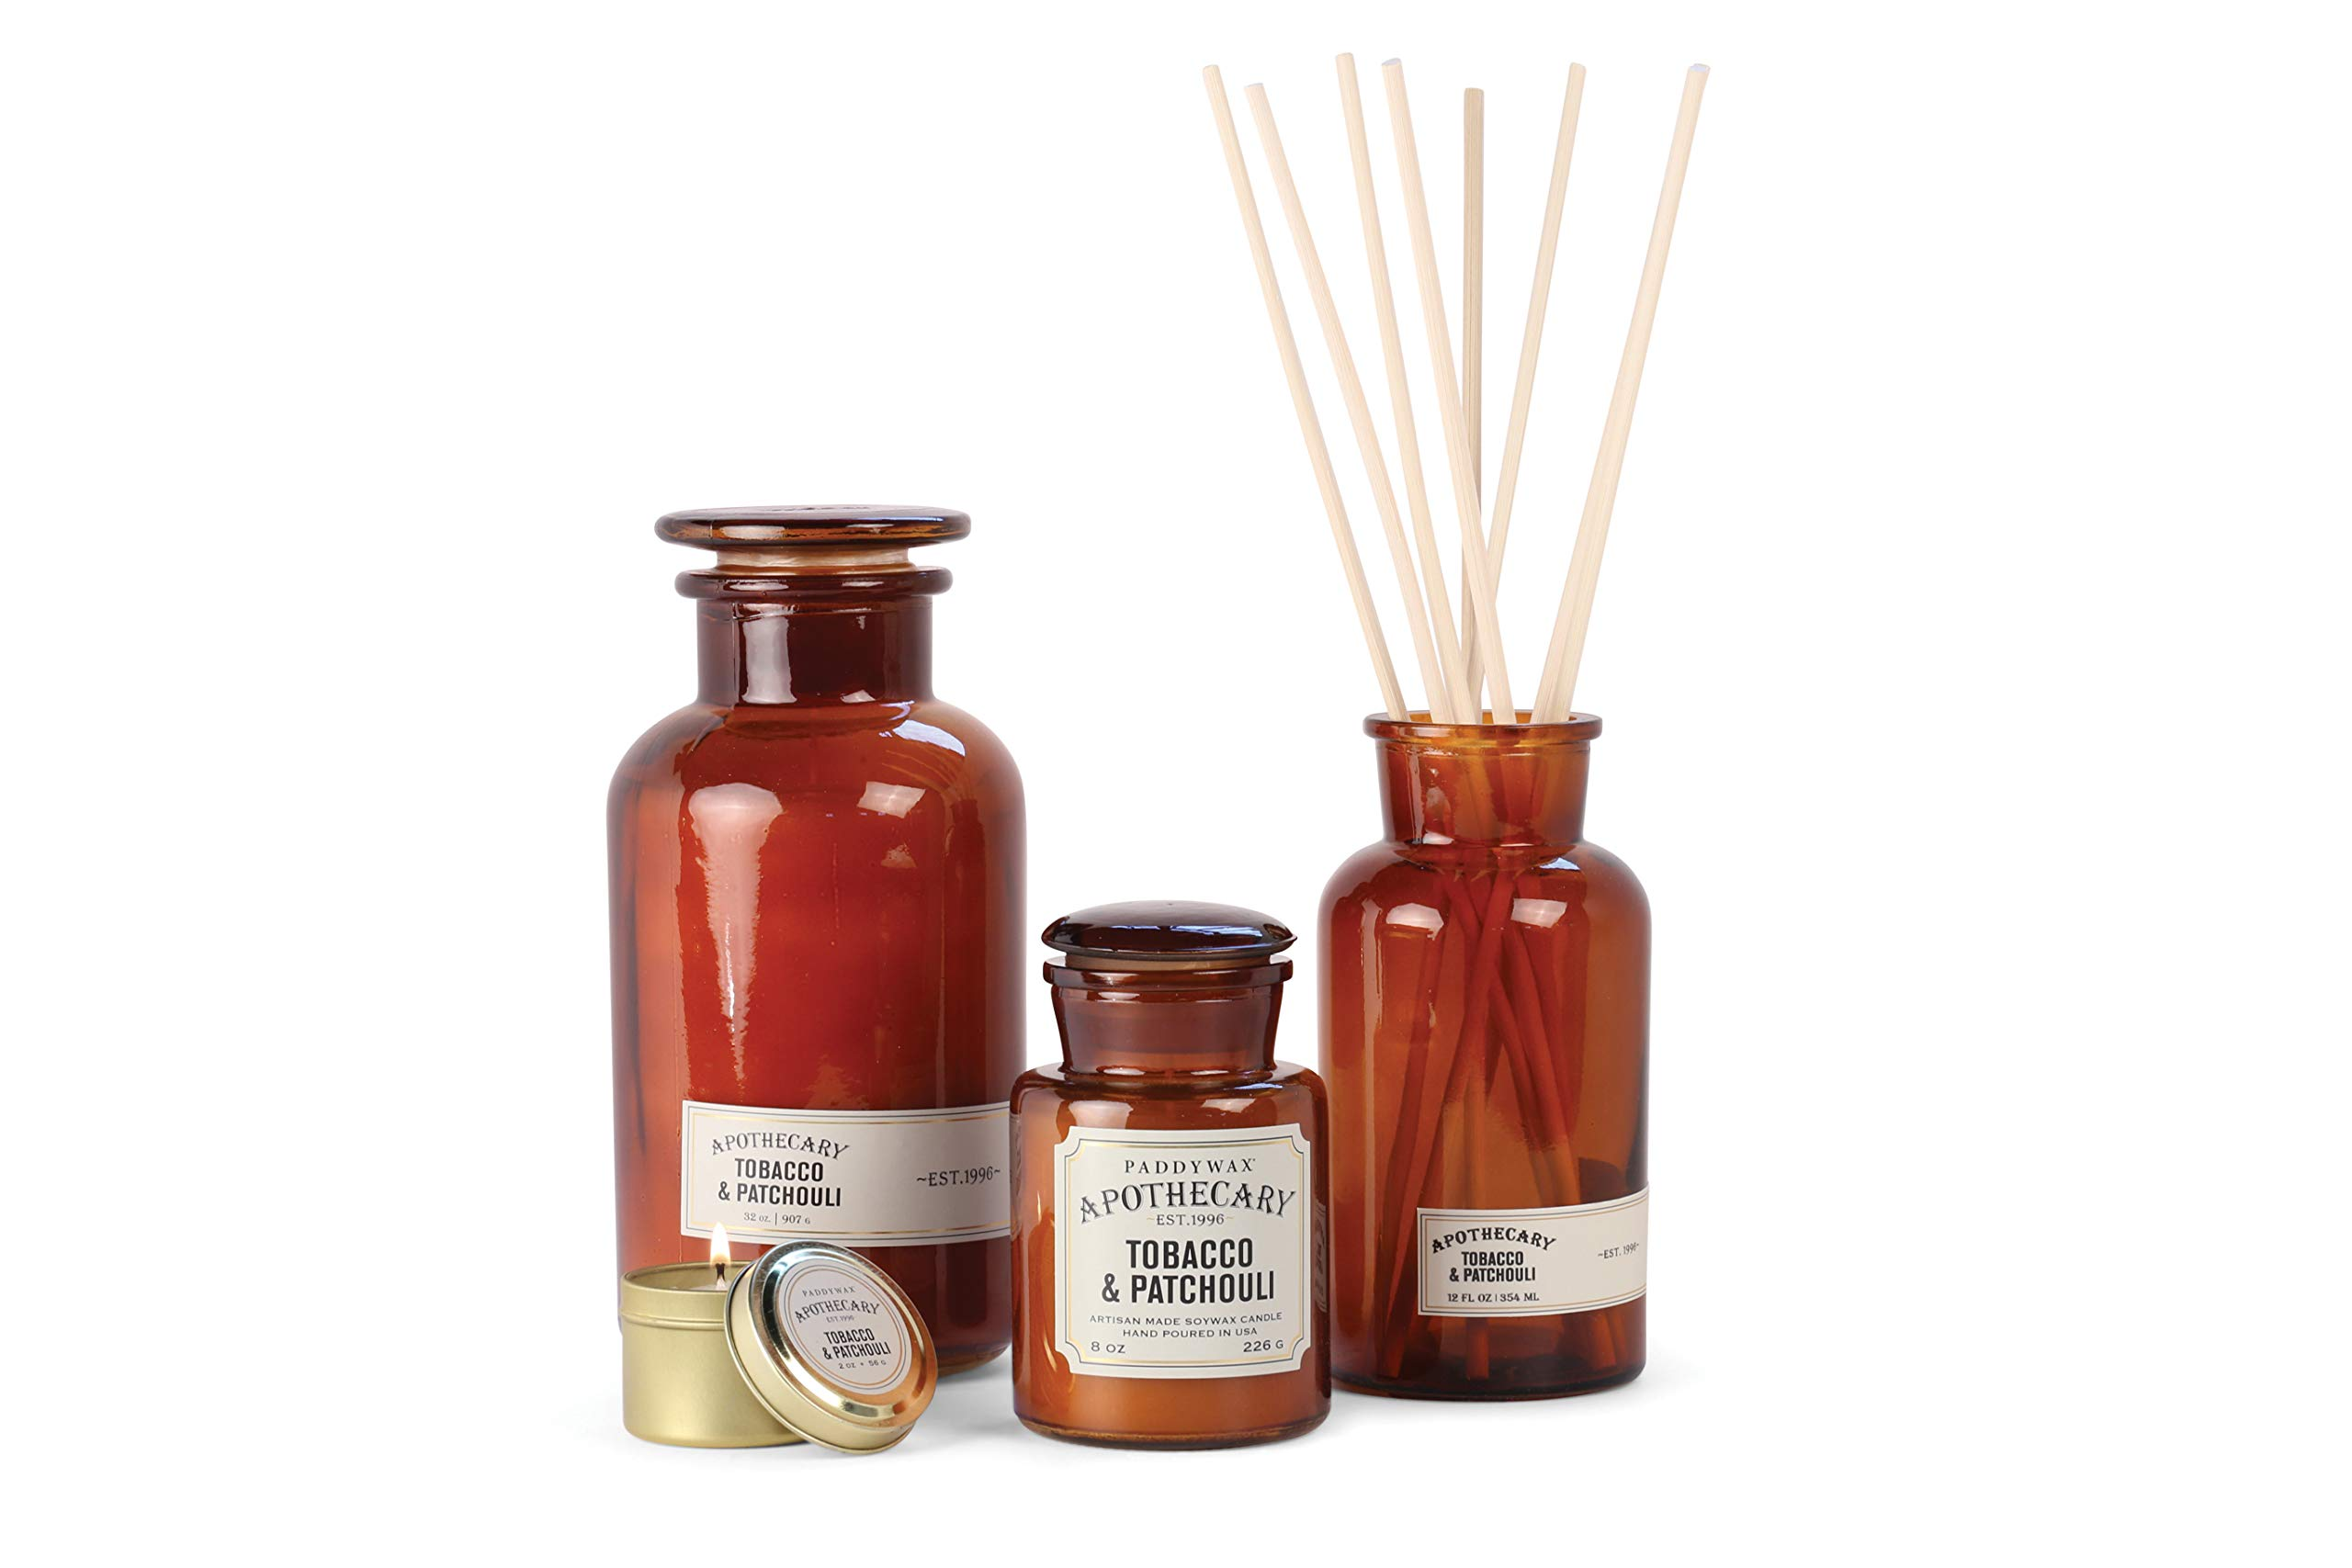 Paddywax Candles Apothecary Collection Soy Wax Blend Candle in Glass Jar, Medium, 8 Ounce, Tobacco & Patchouli